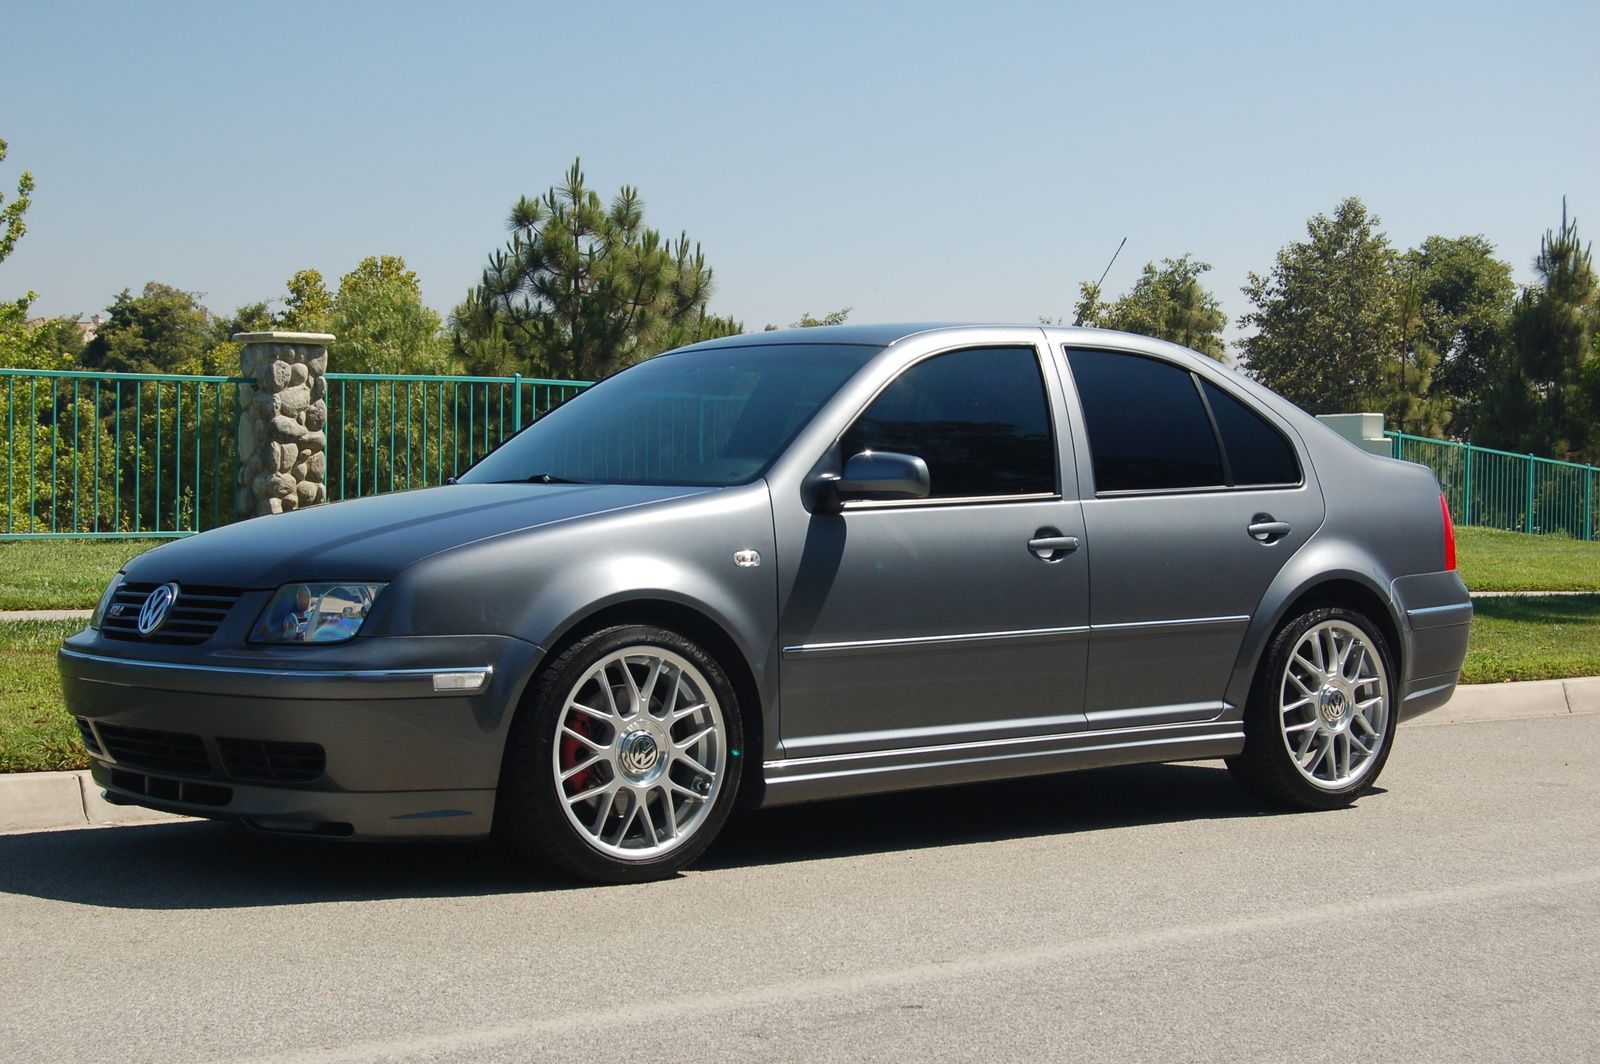 2005 volkswagen jetta gli jetta mk4 pinterest jetta. Black Bedroom Furniture Sets. Home Design Ideas